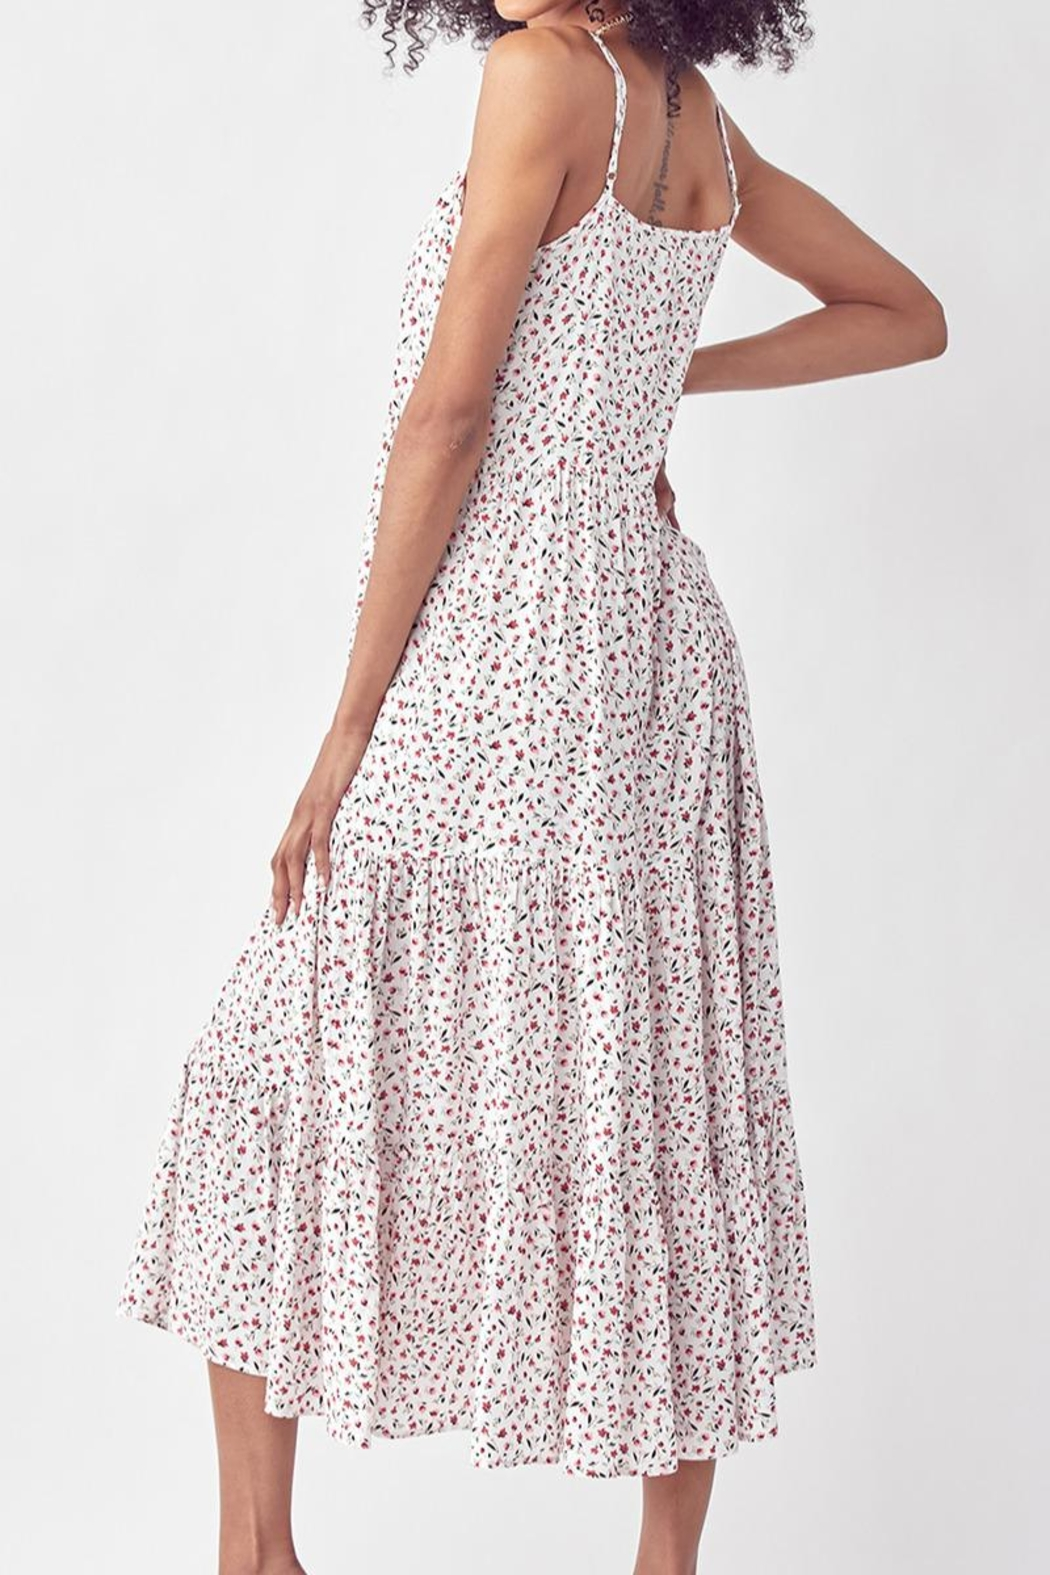 Mint Cloud Boutique Floral Ruffle Tiered Maxi Dress - Front Full Image